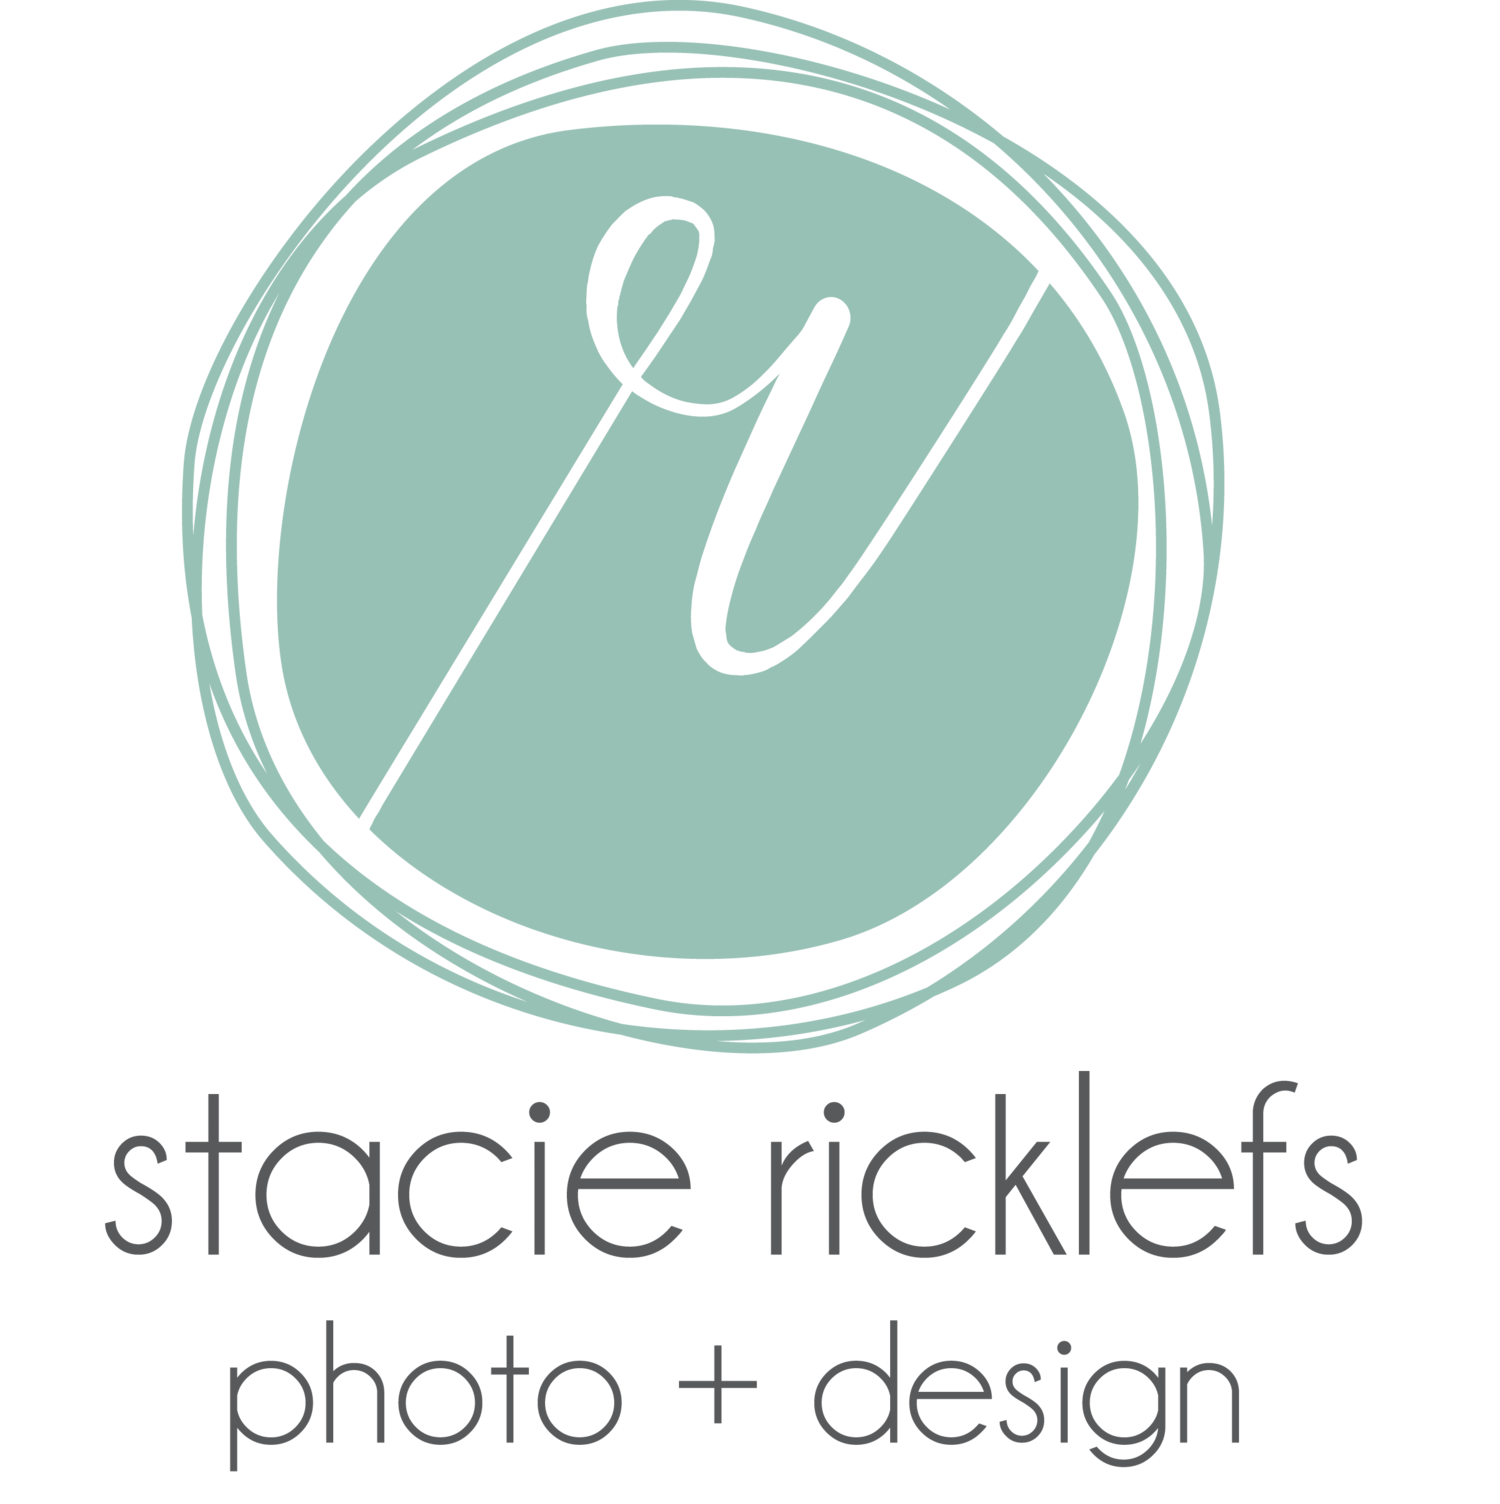 Stacie Ricklefs Photo + Design | Iowa Wedding Photographer